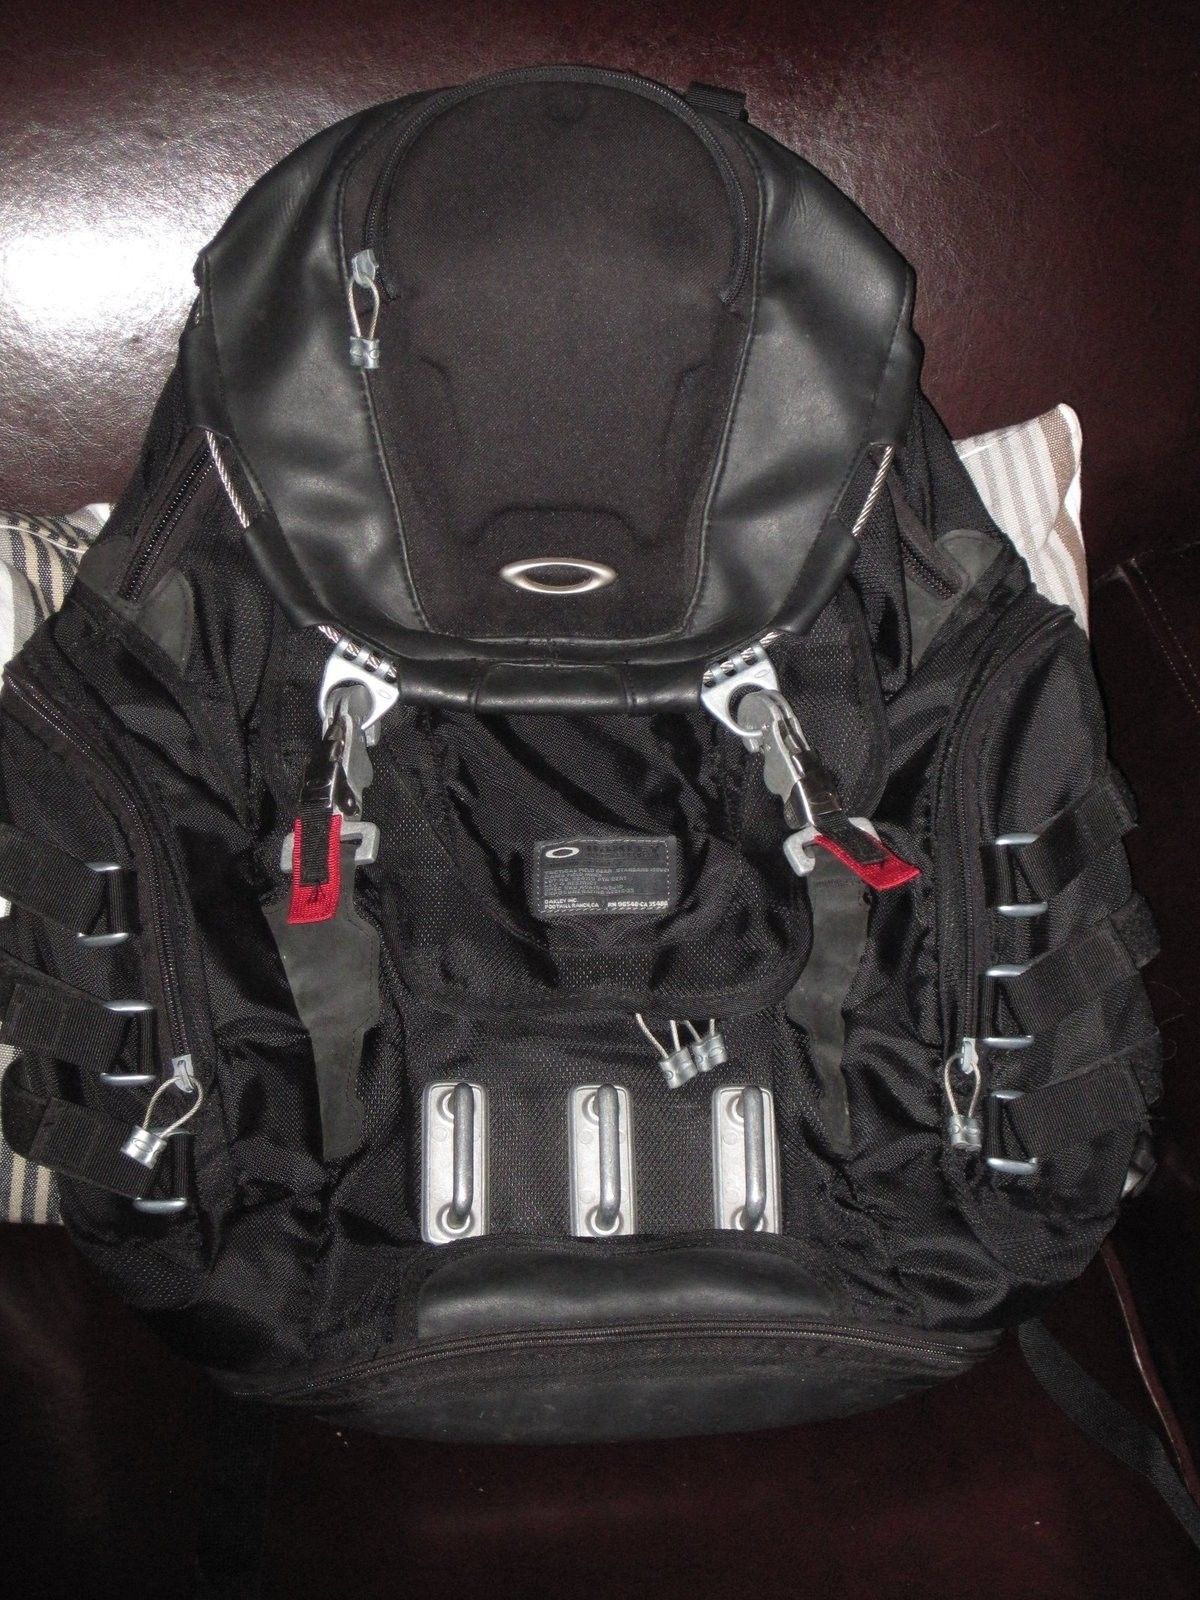 Kitchen Sink Backpack - IMG_0017.JPG